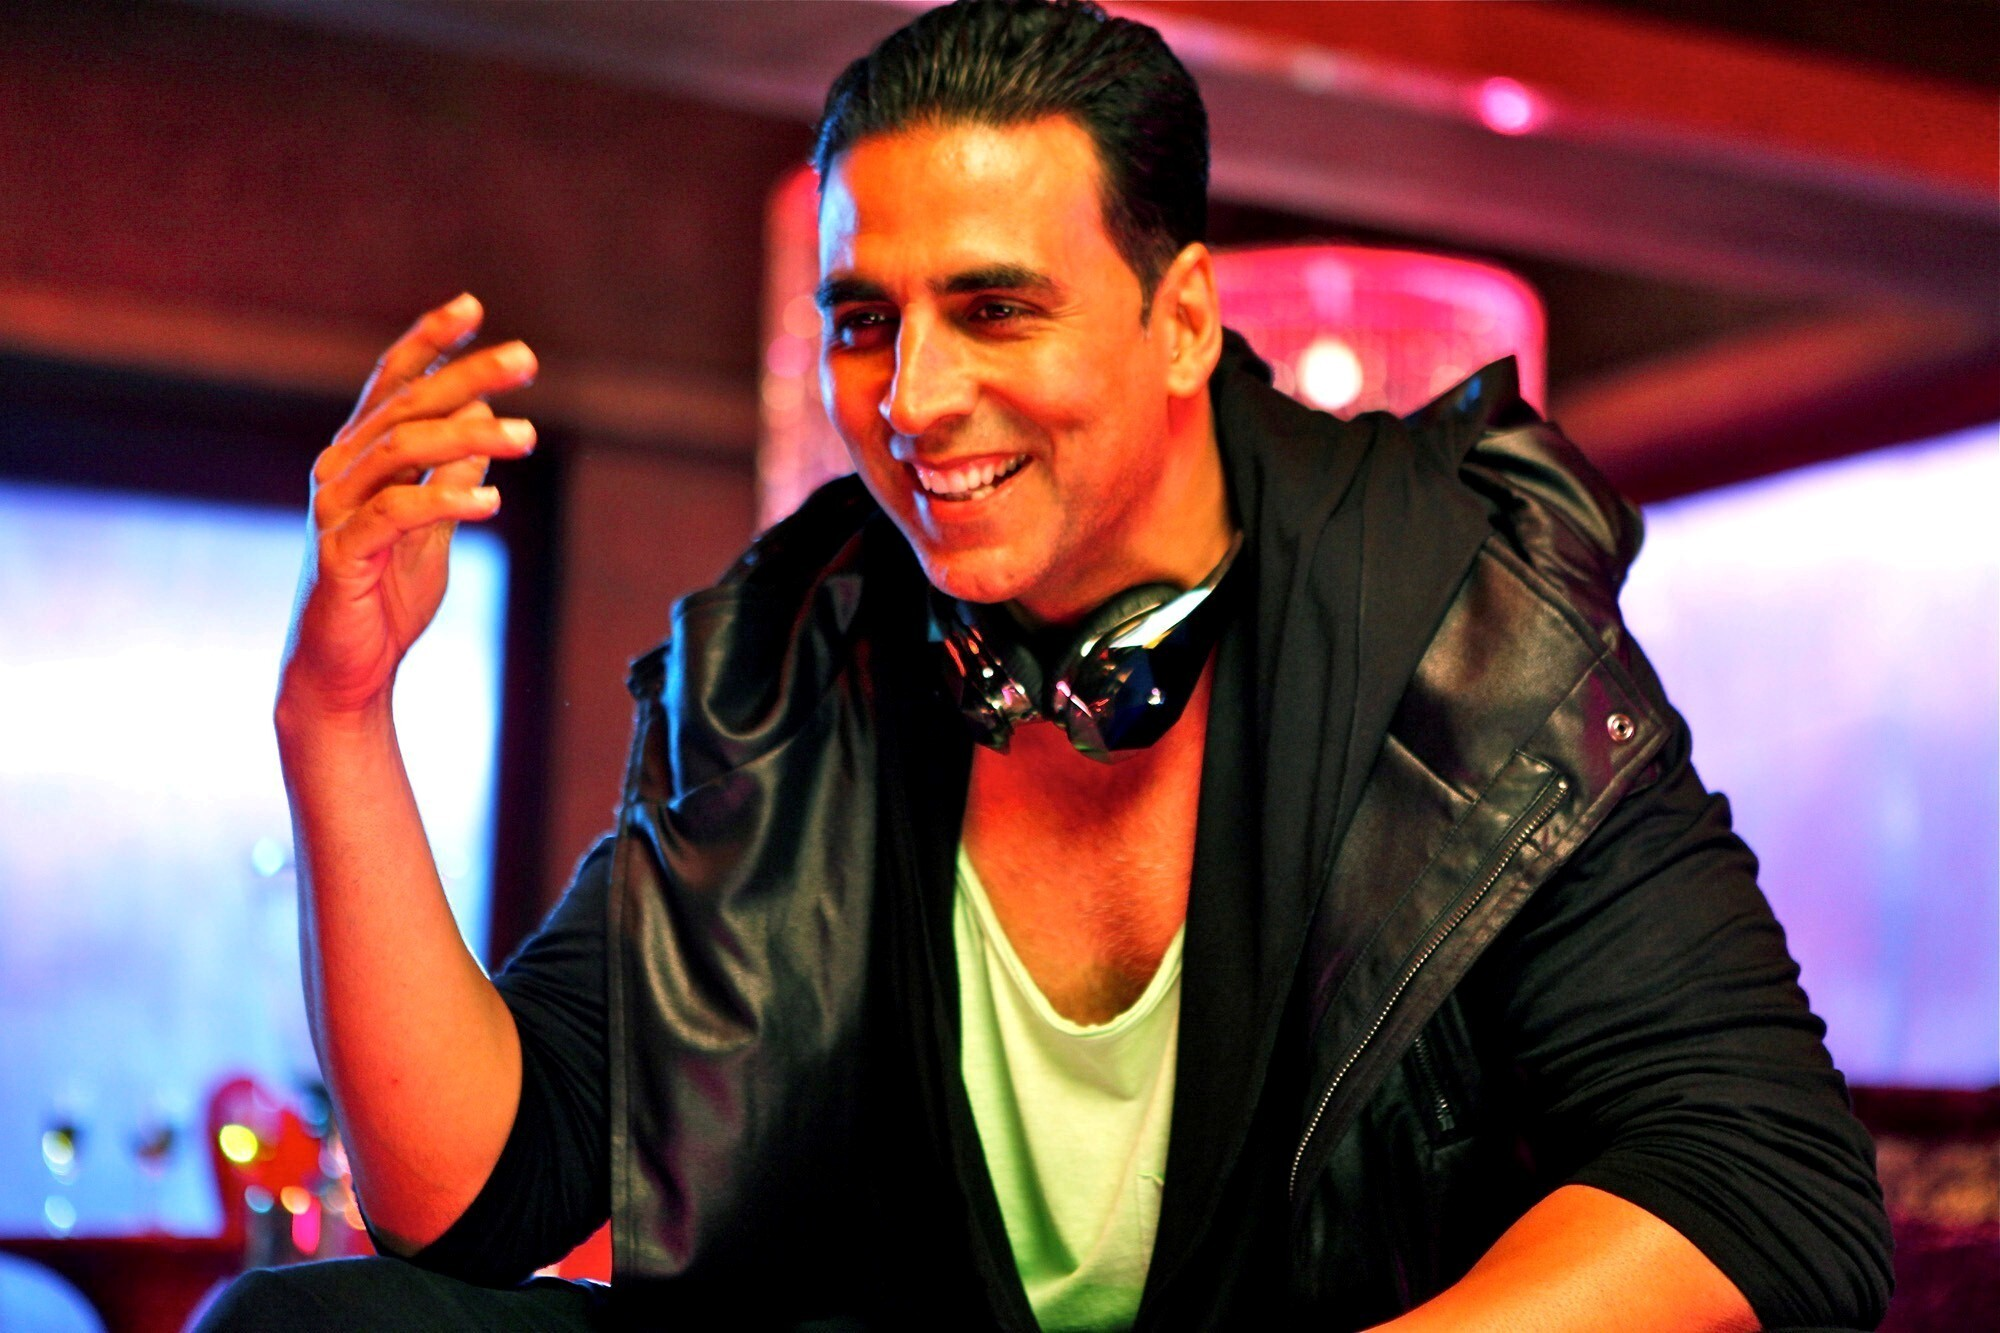 Break comcs: download akshay kumar wallpapers.